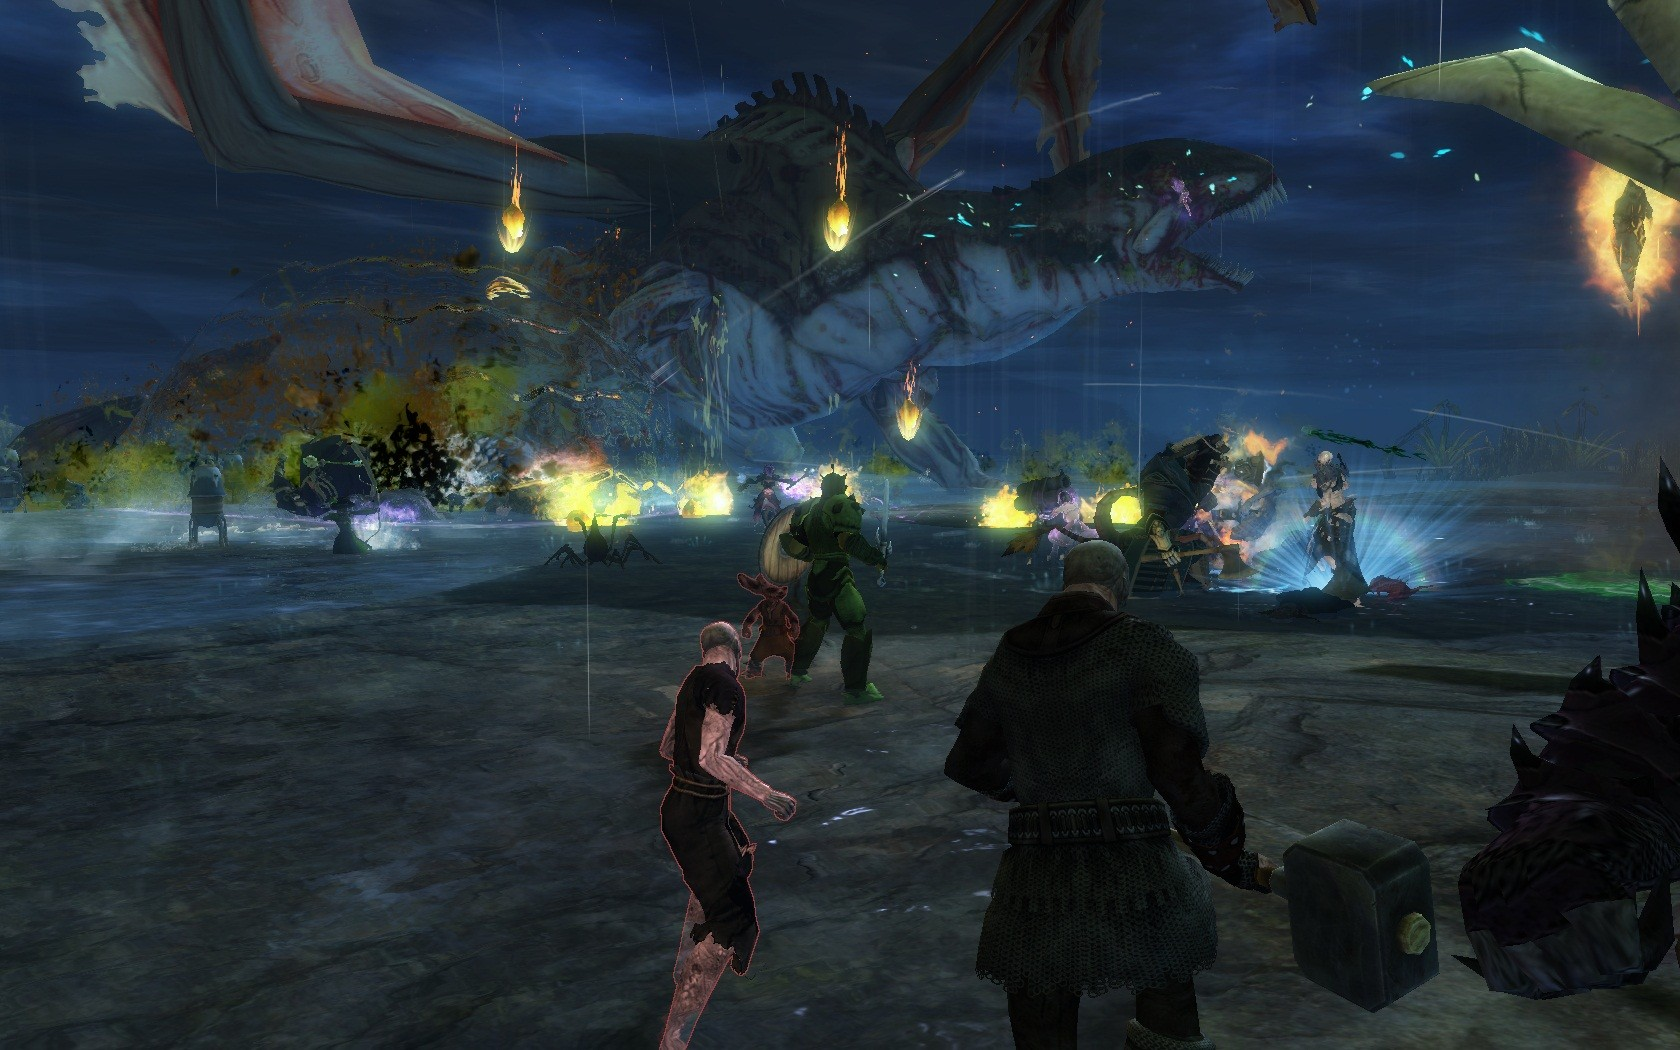 Guild Wars 2 - Cohas fighting a Dragon